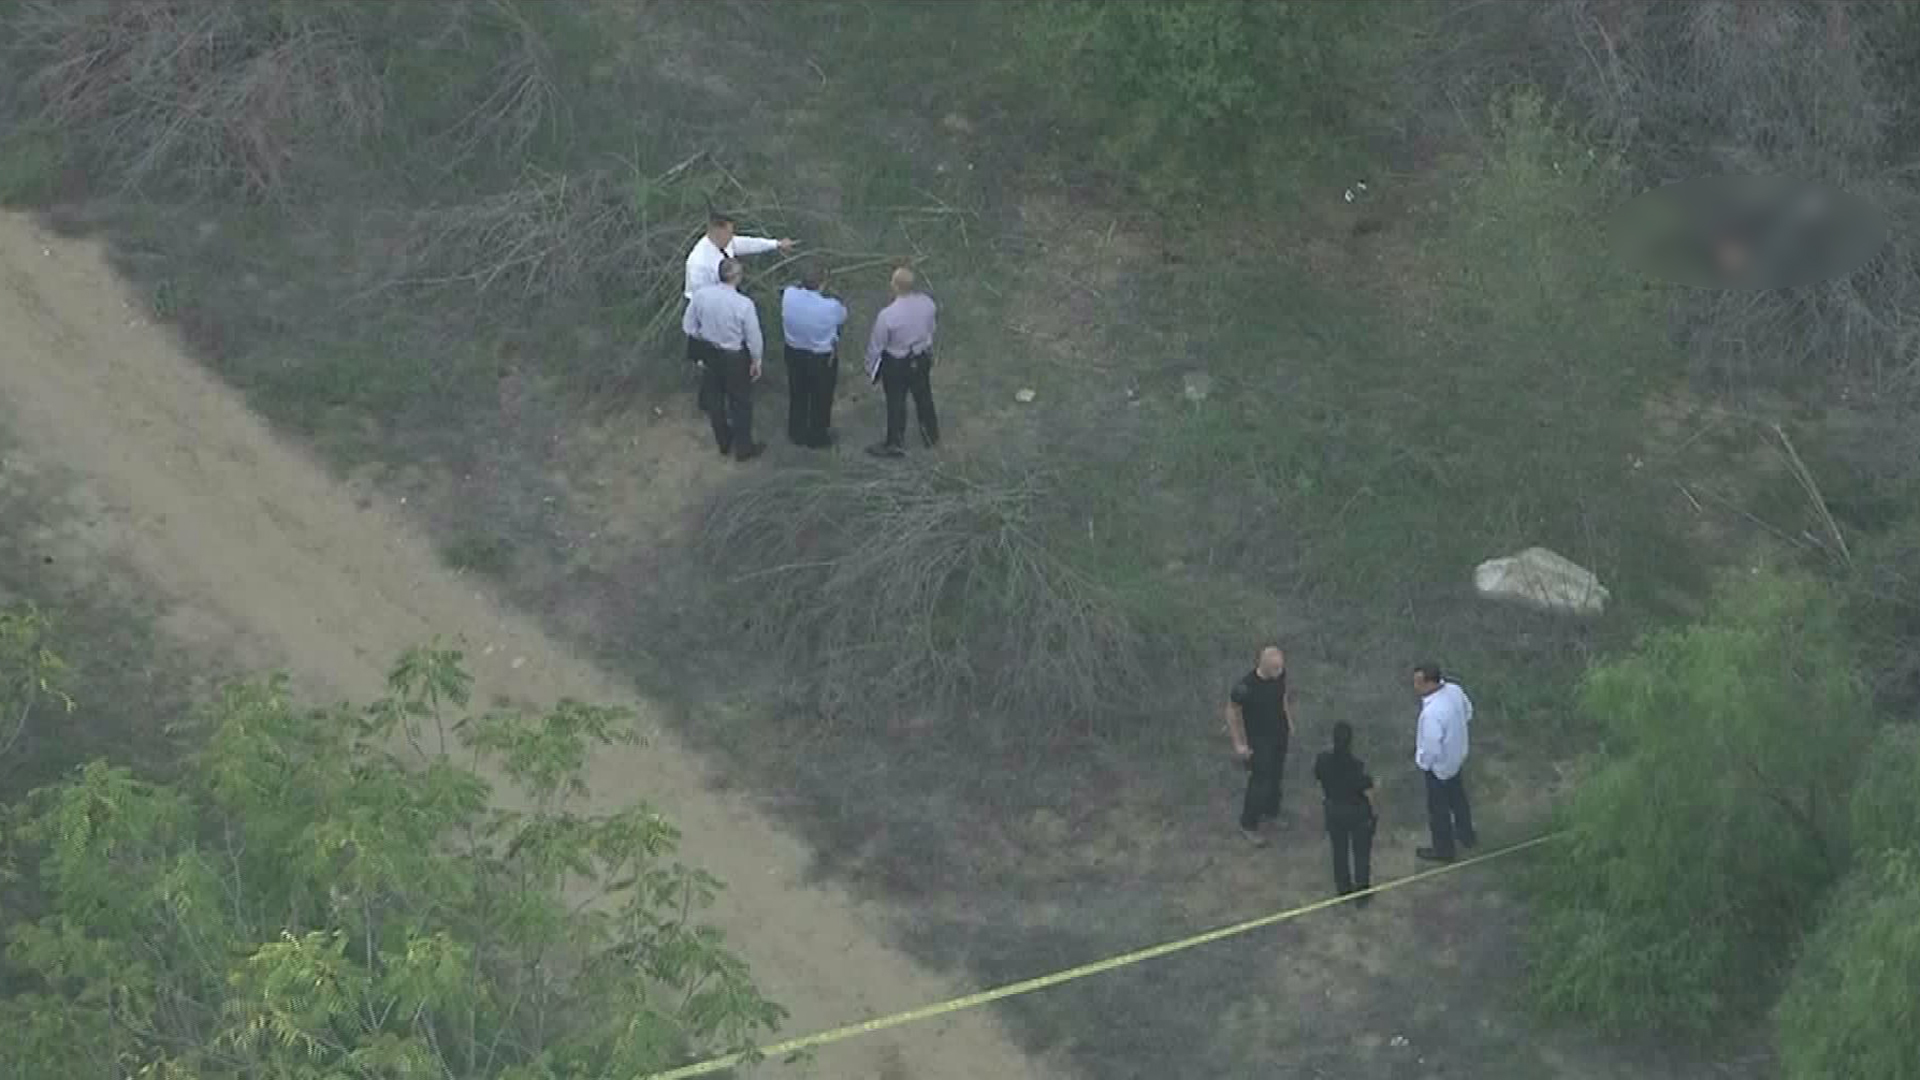 Body Located At Debs Park In Montecito Heights - NY Press News